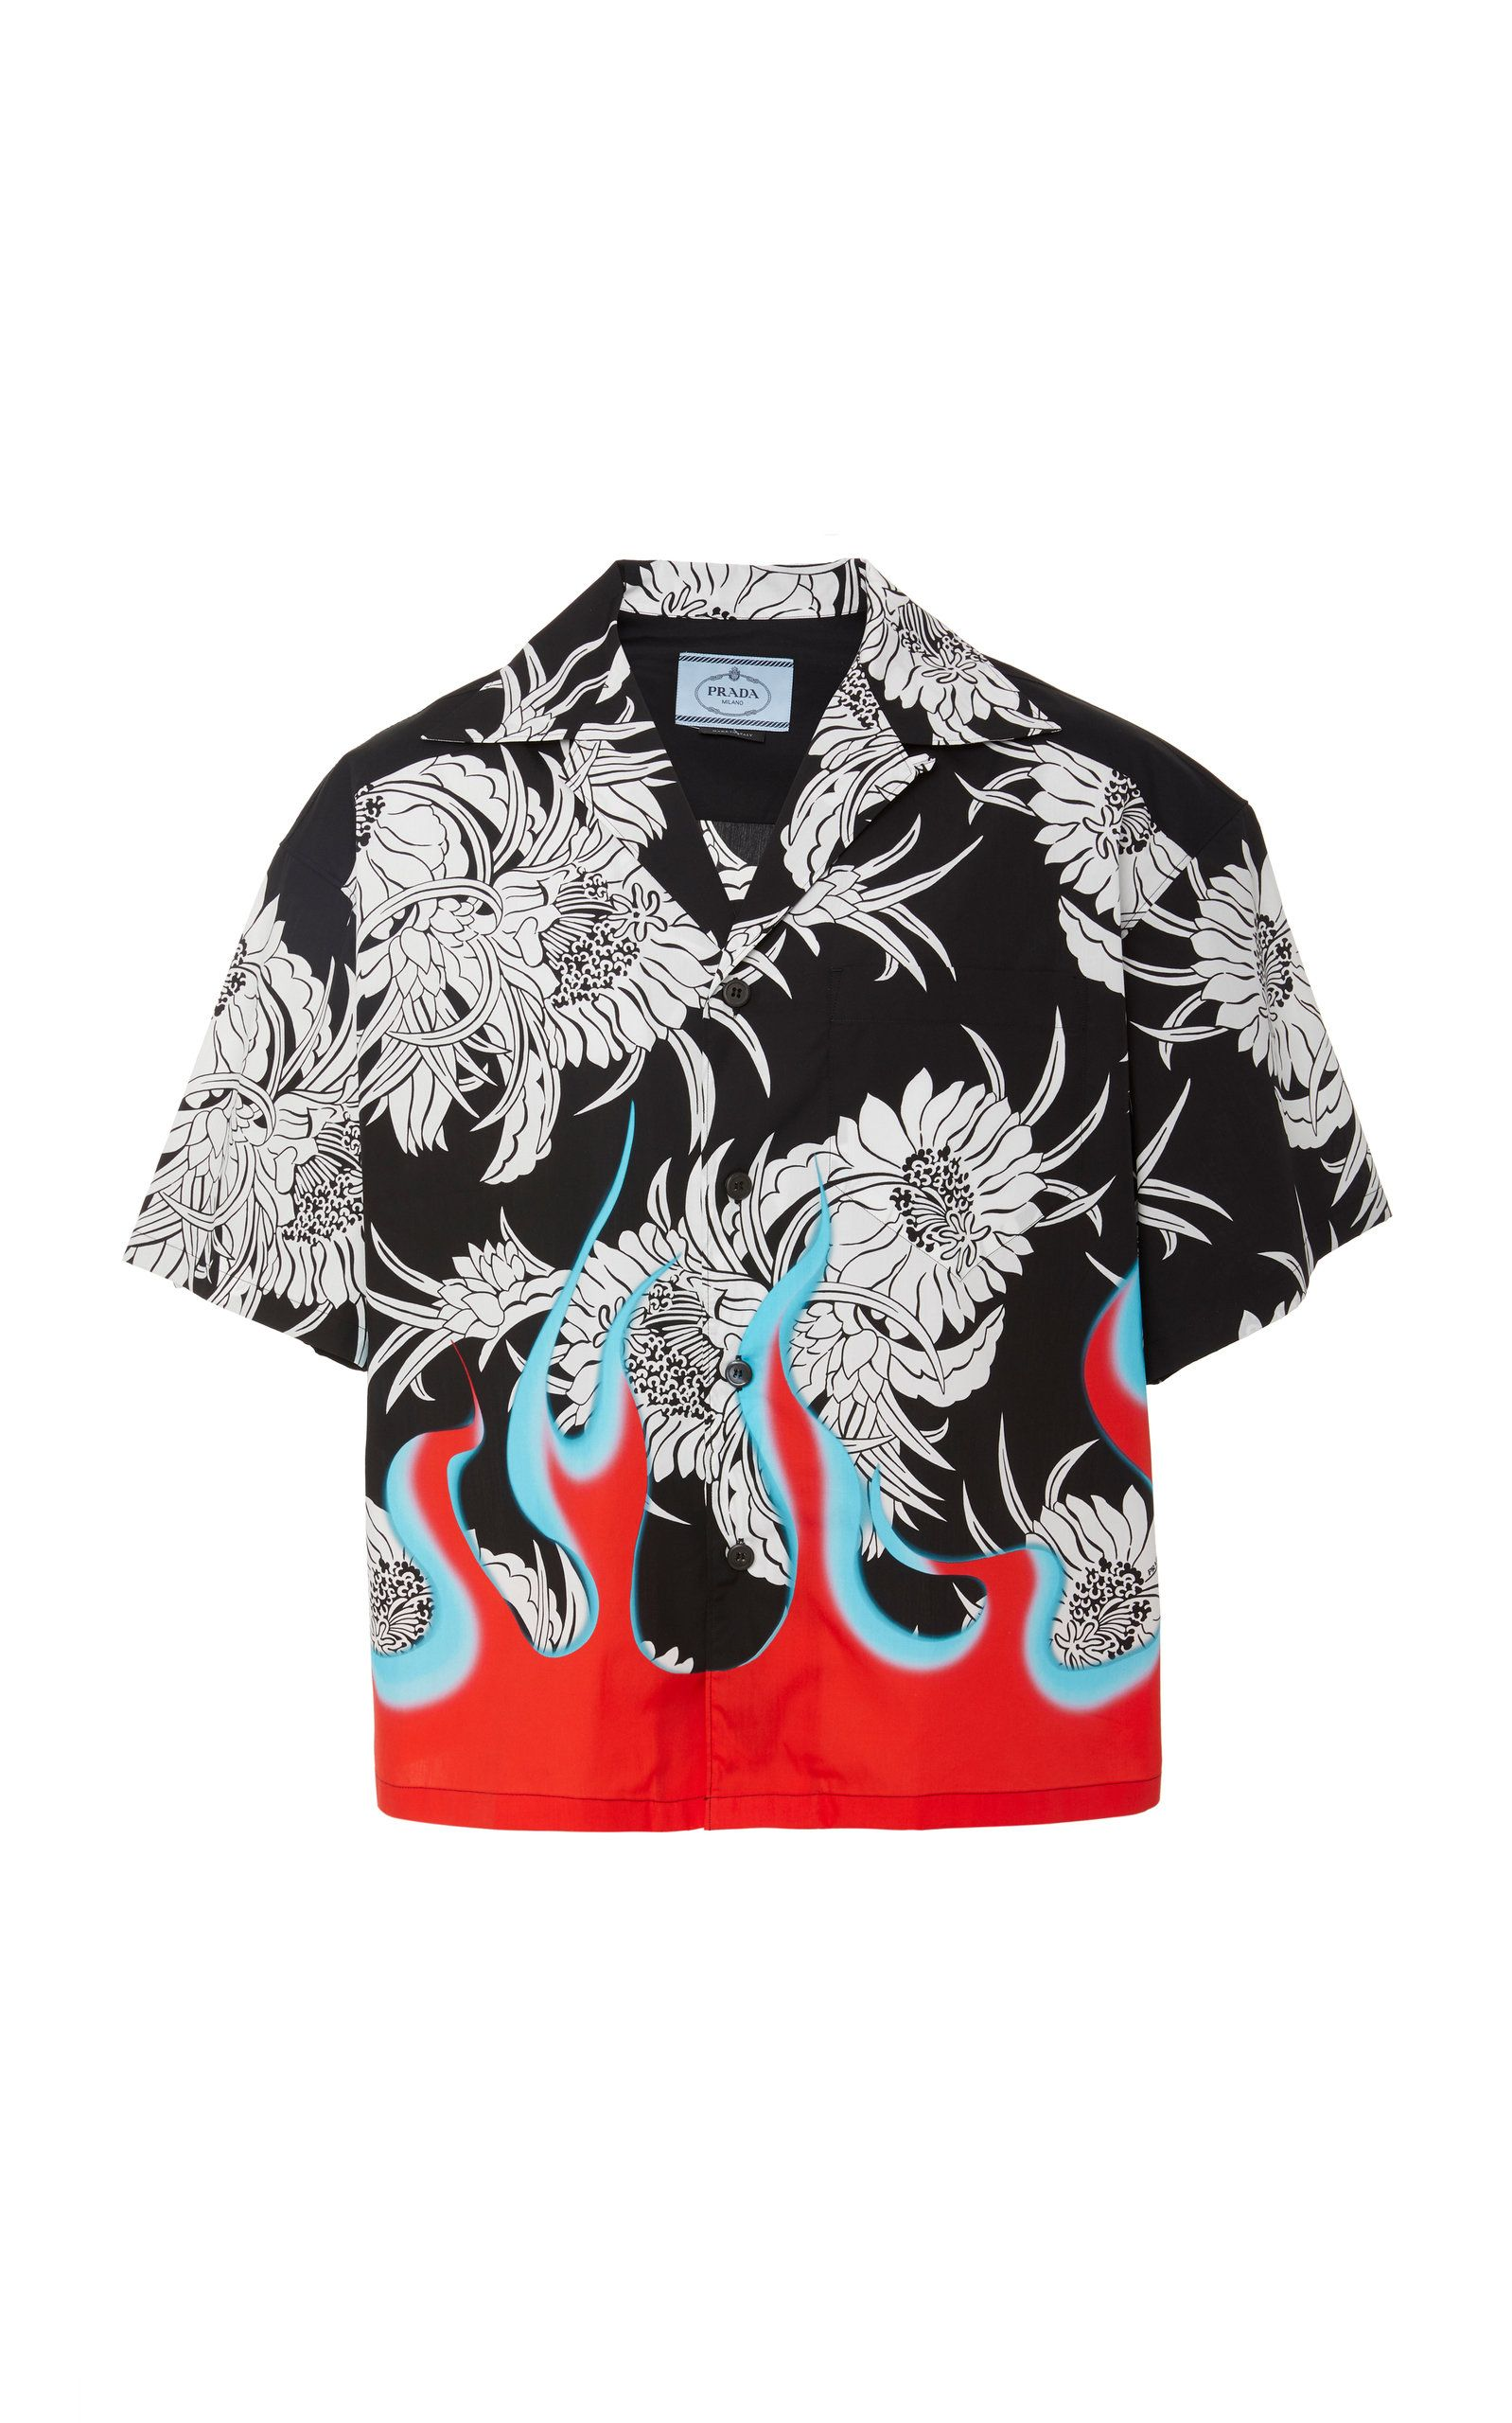 d6986a1cb ... the label's archival chrysanthemum and flame motifs, Prada's  cotton-poplin shirt is cut with a structured, boxy fit. Wear yours with  tailored shorts ...